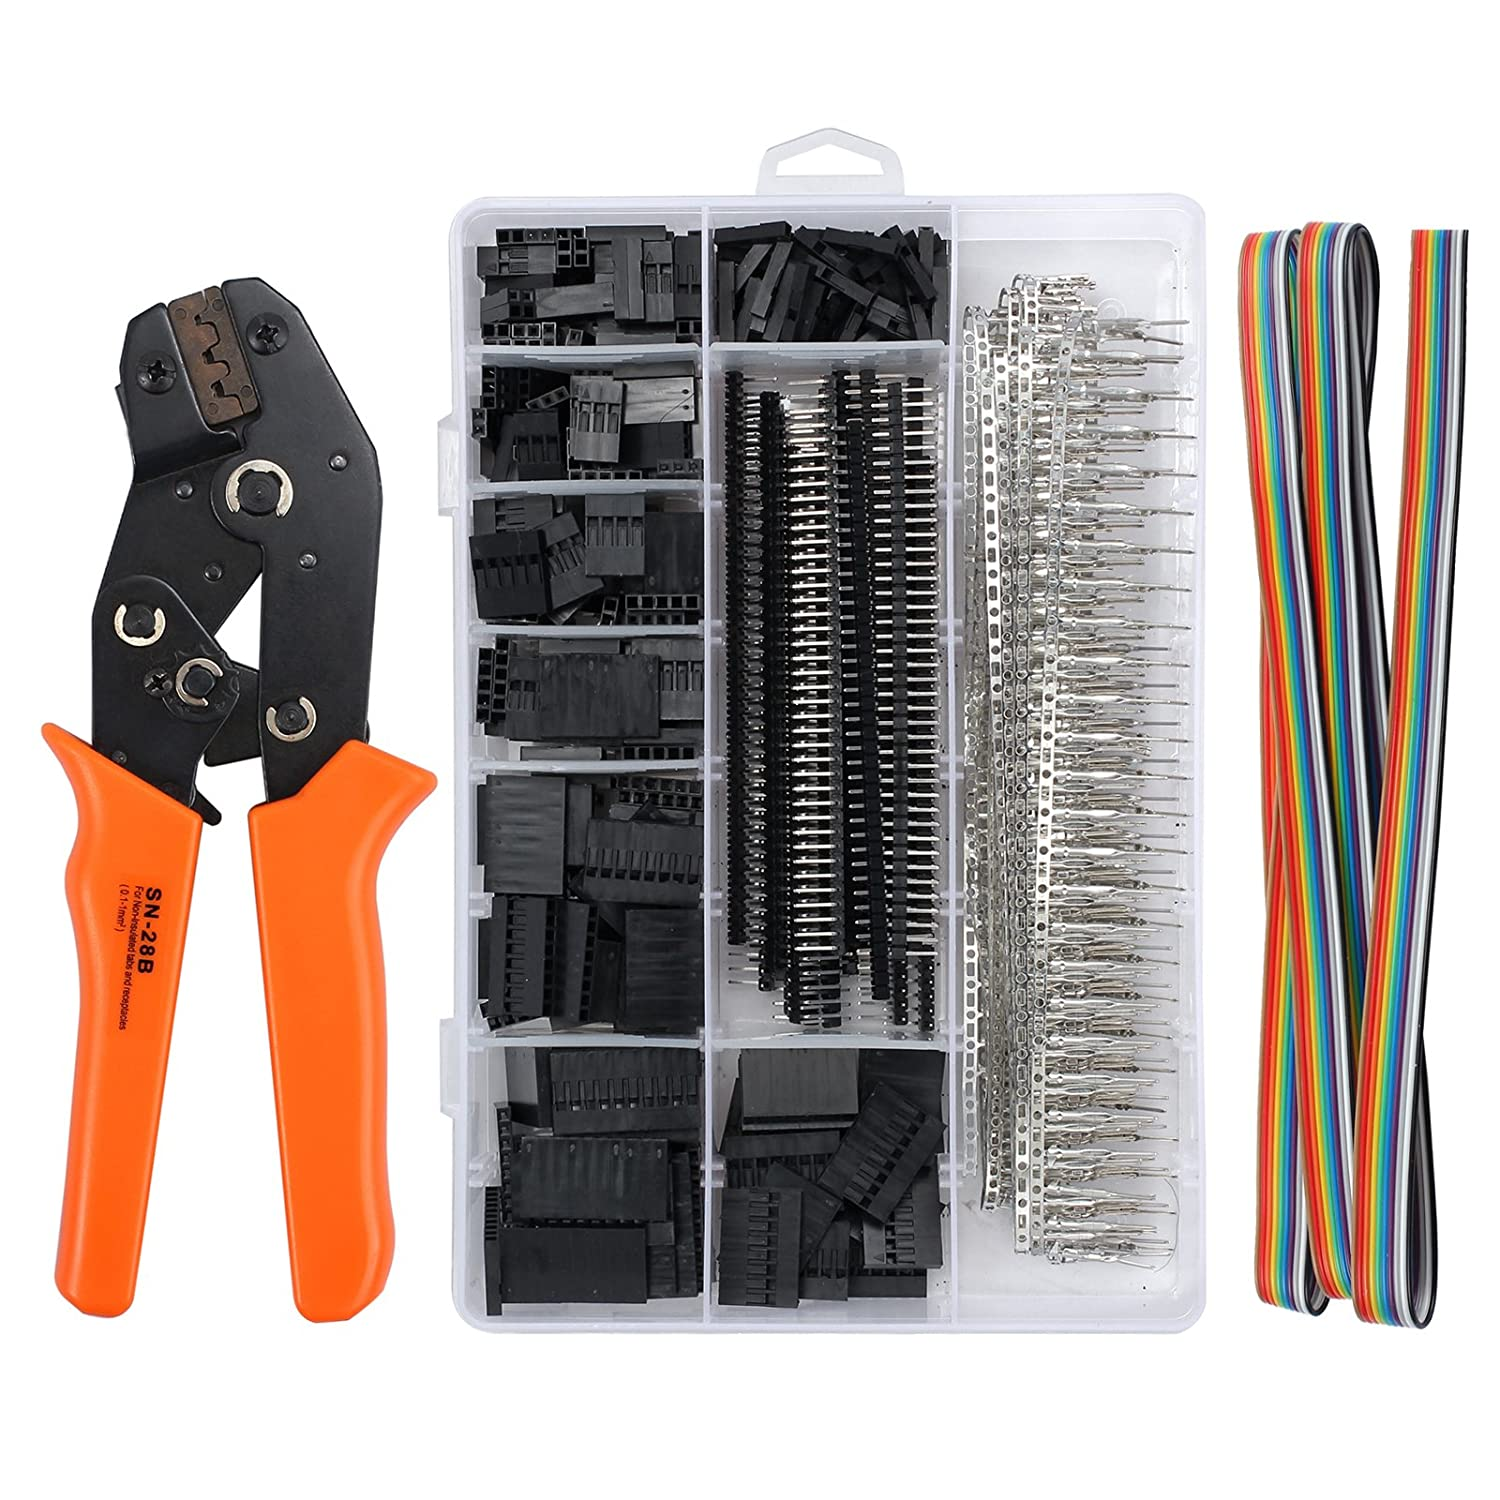 Kamtop Dupont Crimping Tools SN-28B Dupont Ratchet Crimper with 1550PCS Dupont Male/Female Pin Connectors 0.1-1.0mm² Dupont Crimping Set for 2.54mm 3.96mm KF2510 Connector 28-18AWG TL313KPTEU